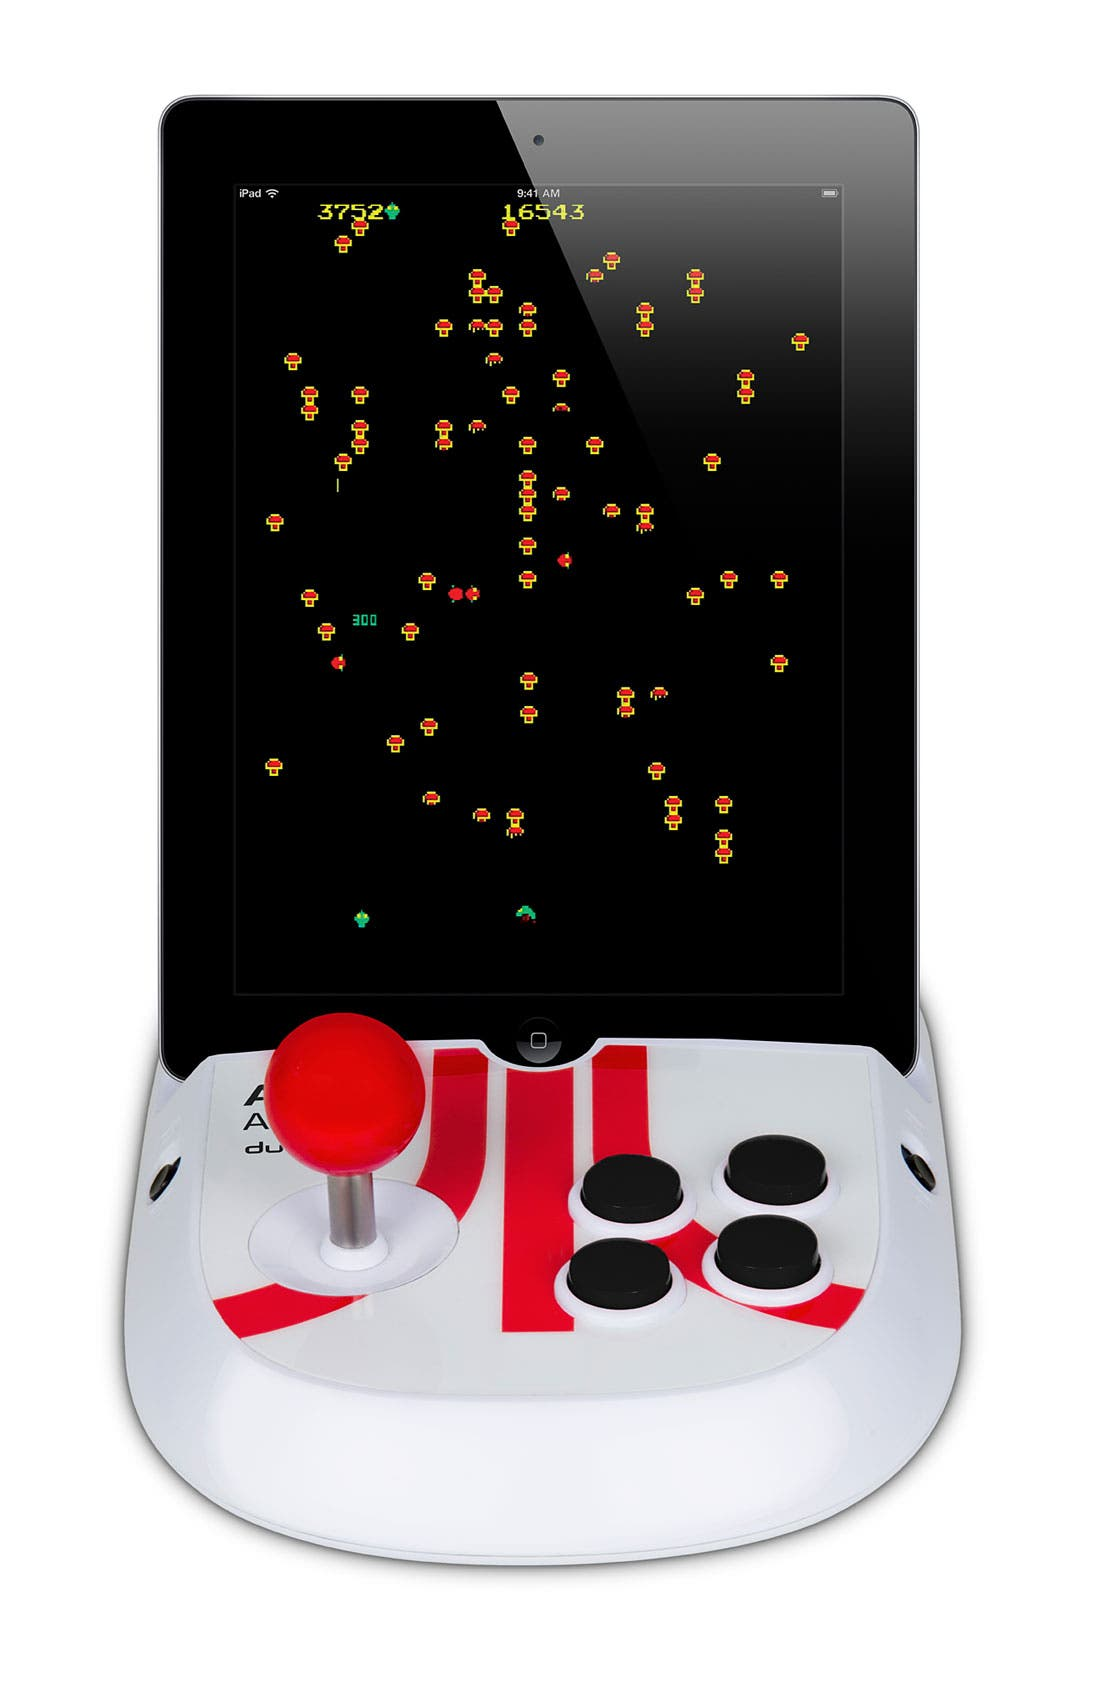 Main Image - 'Atari® Arcade Duo Powered' iPad Joystick Game